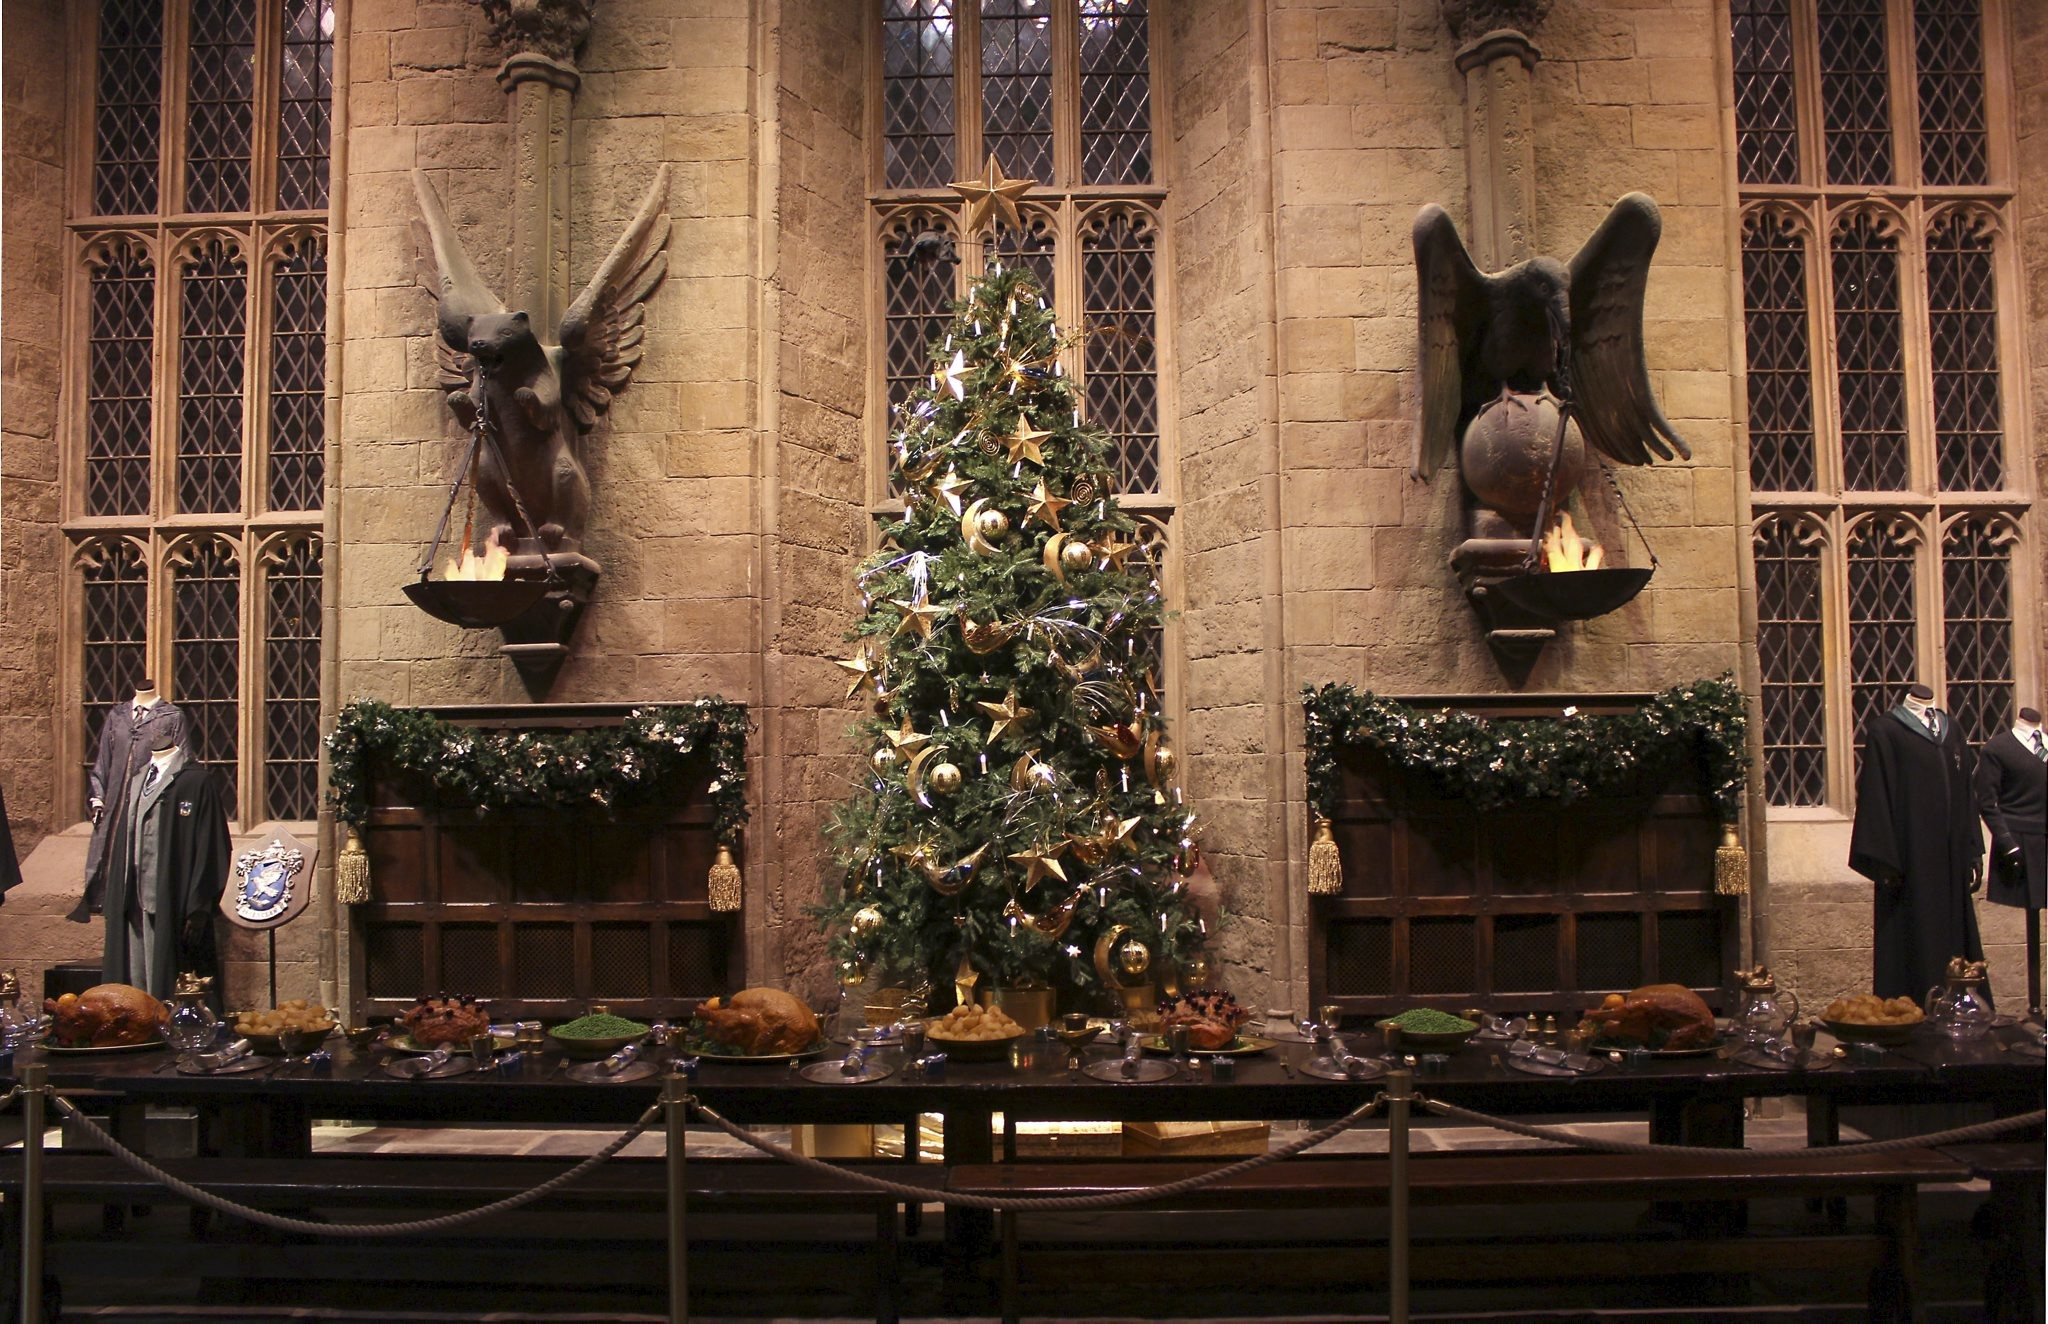 Hogwarts in the Snow, Harry Potter Studio Tour